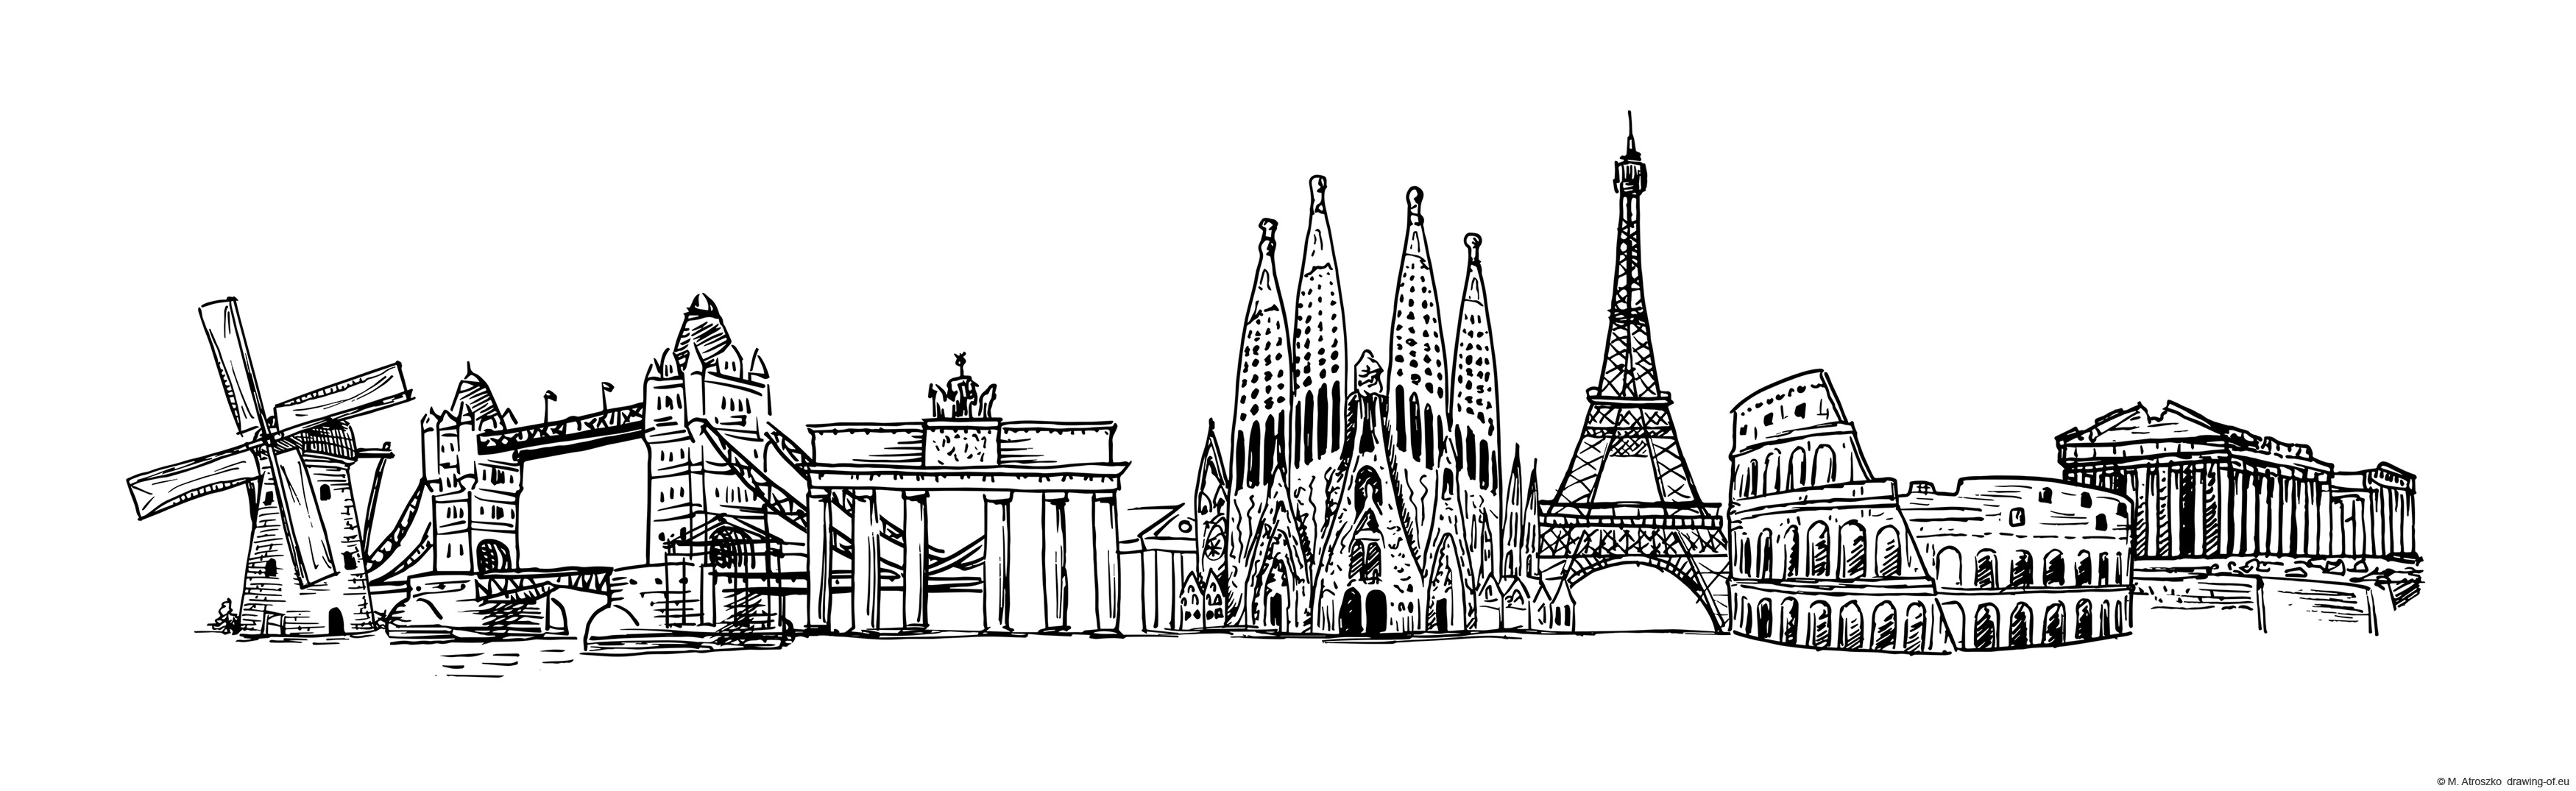 Famous buildings of Europe draw